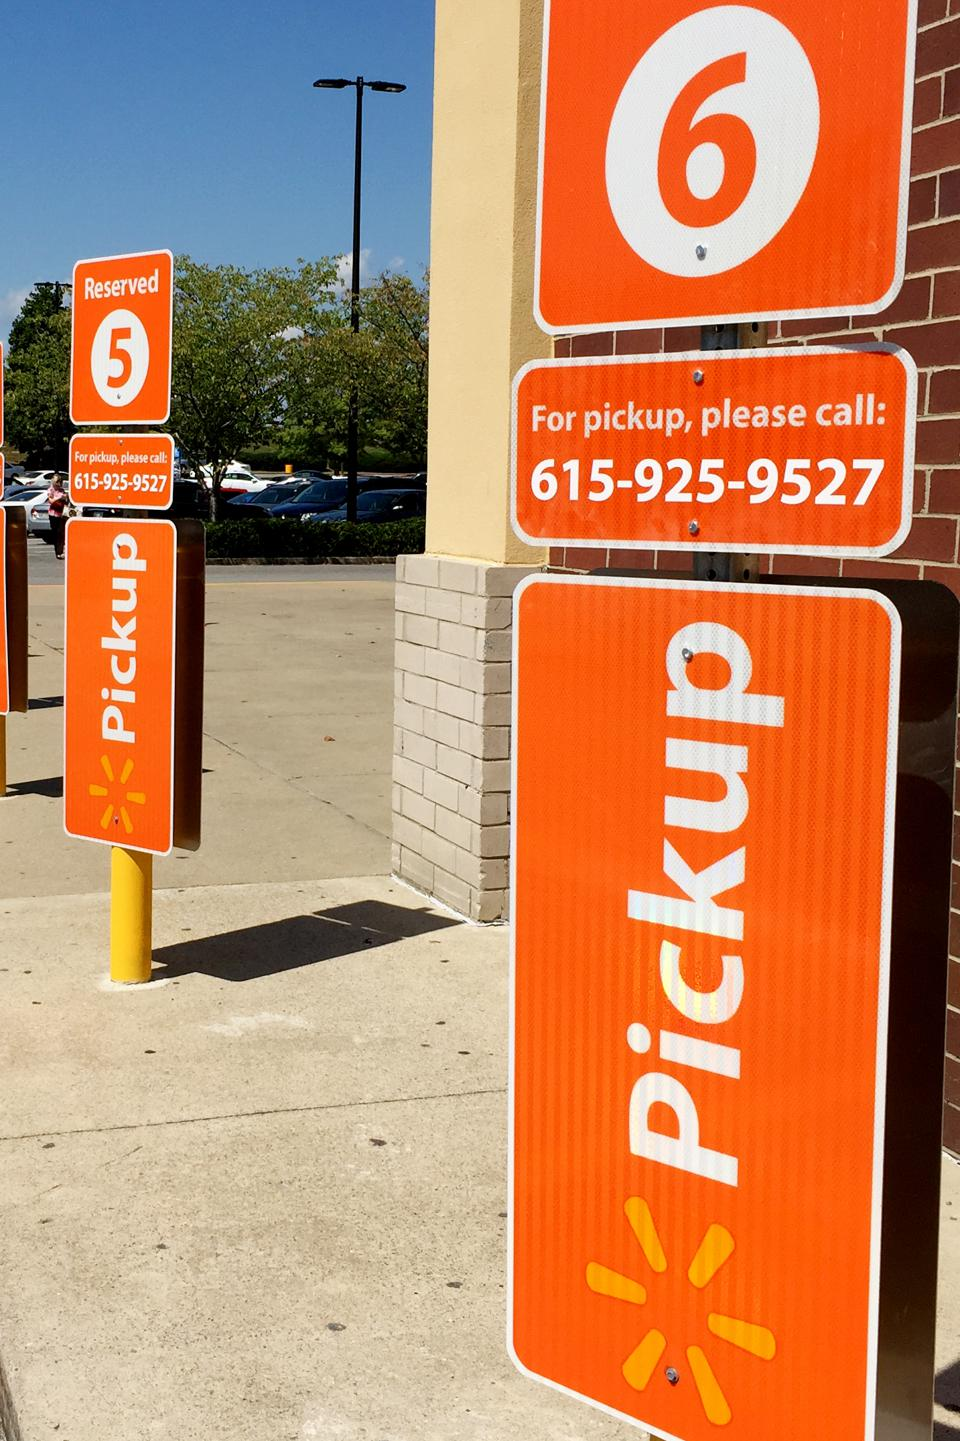 Walmart has allocated designated parking spaces for online groc